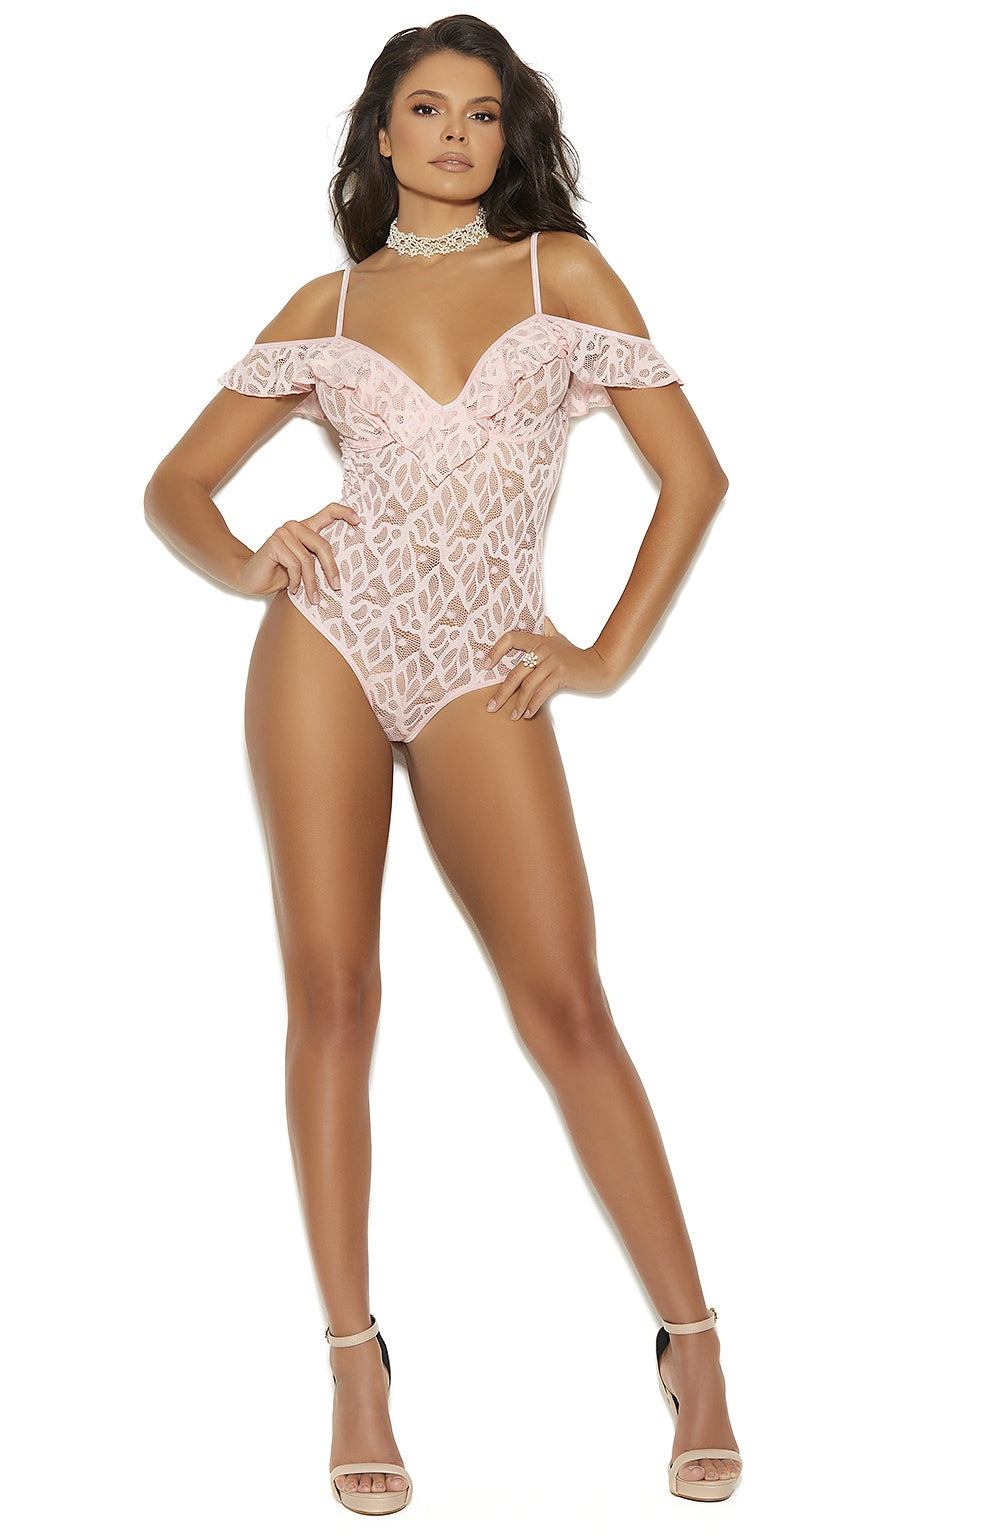 Baby pink lace teddy - Sexylingerieland